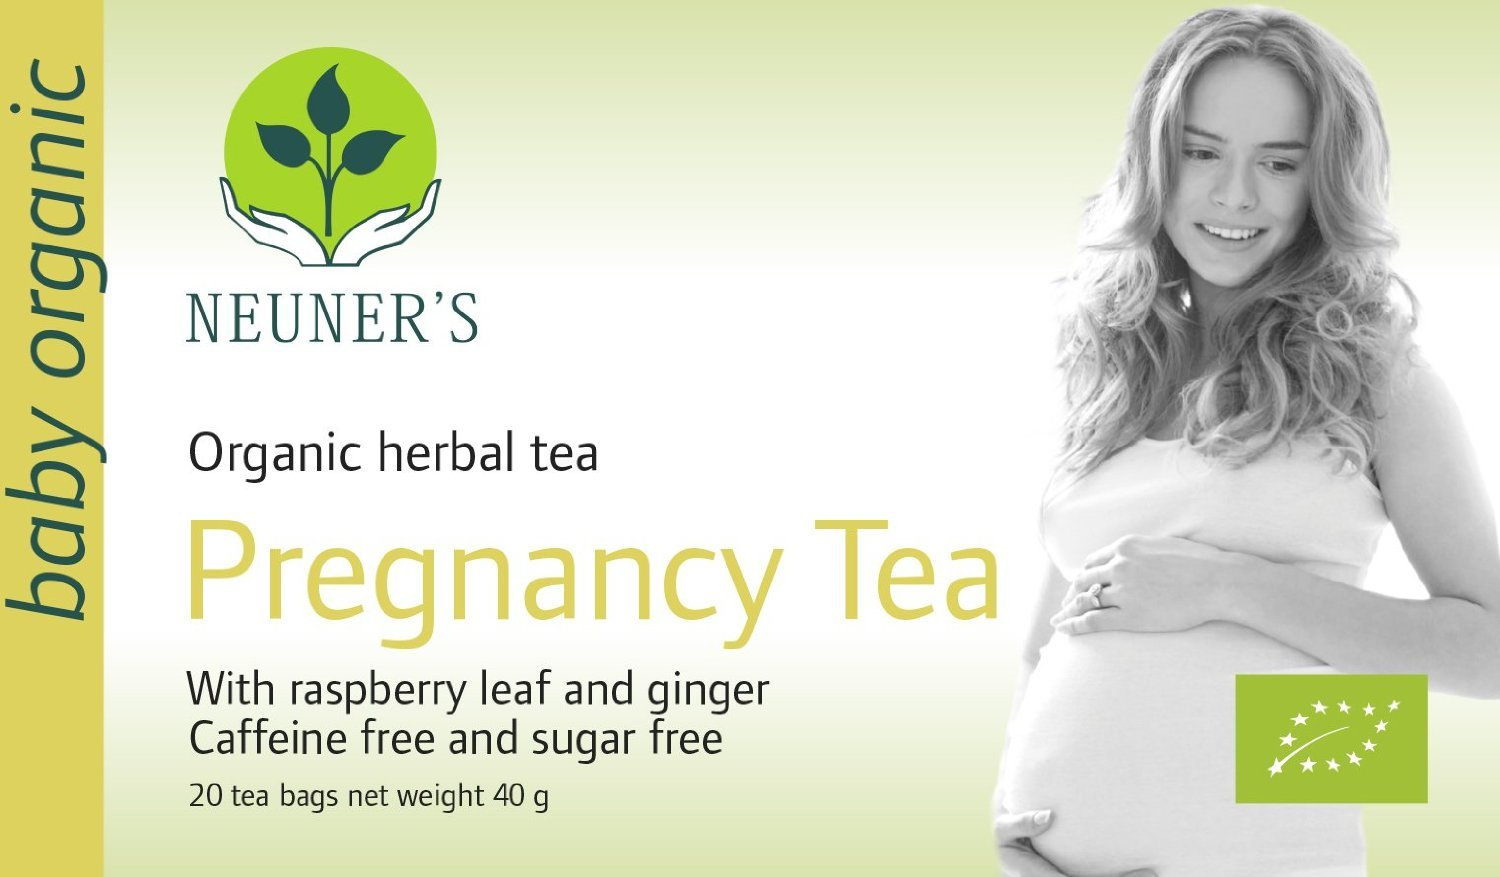 (Pack Of 2) - Organic Pregnancy Tea | NEUNER'S NEUNER' S